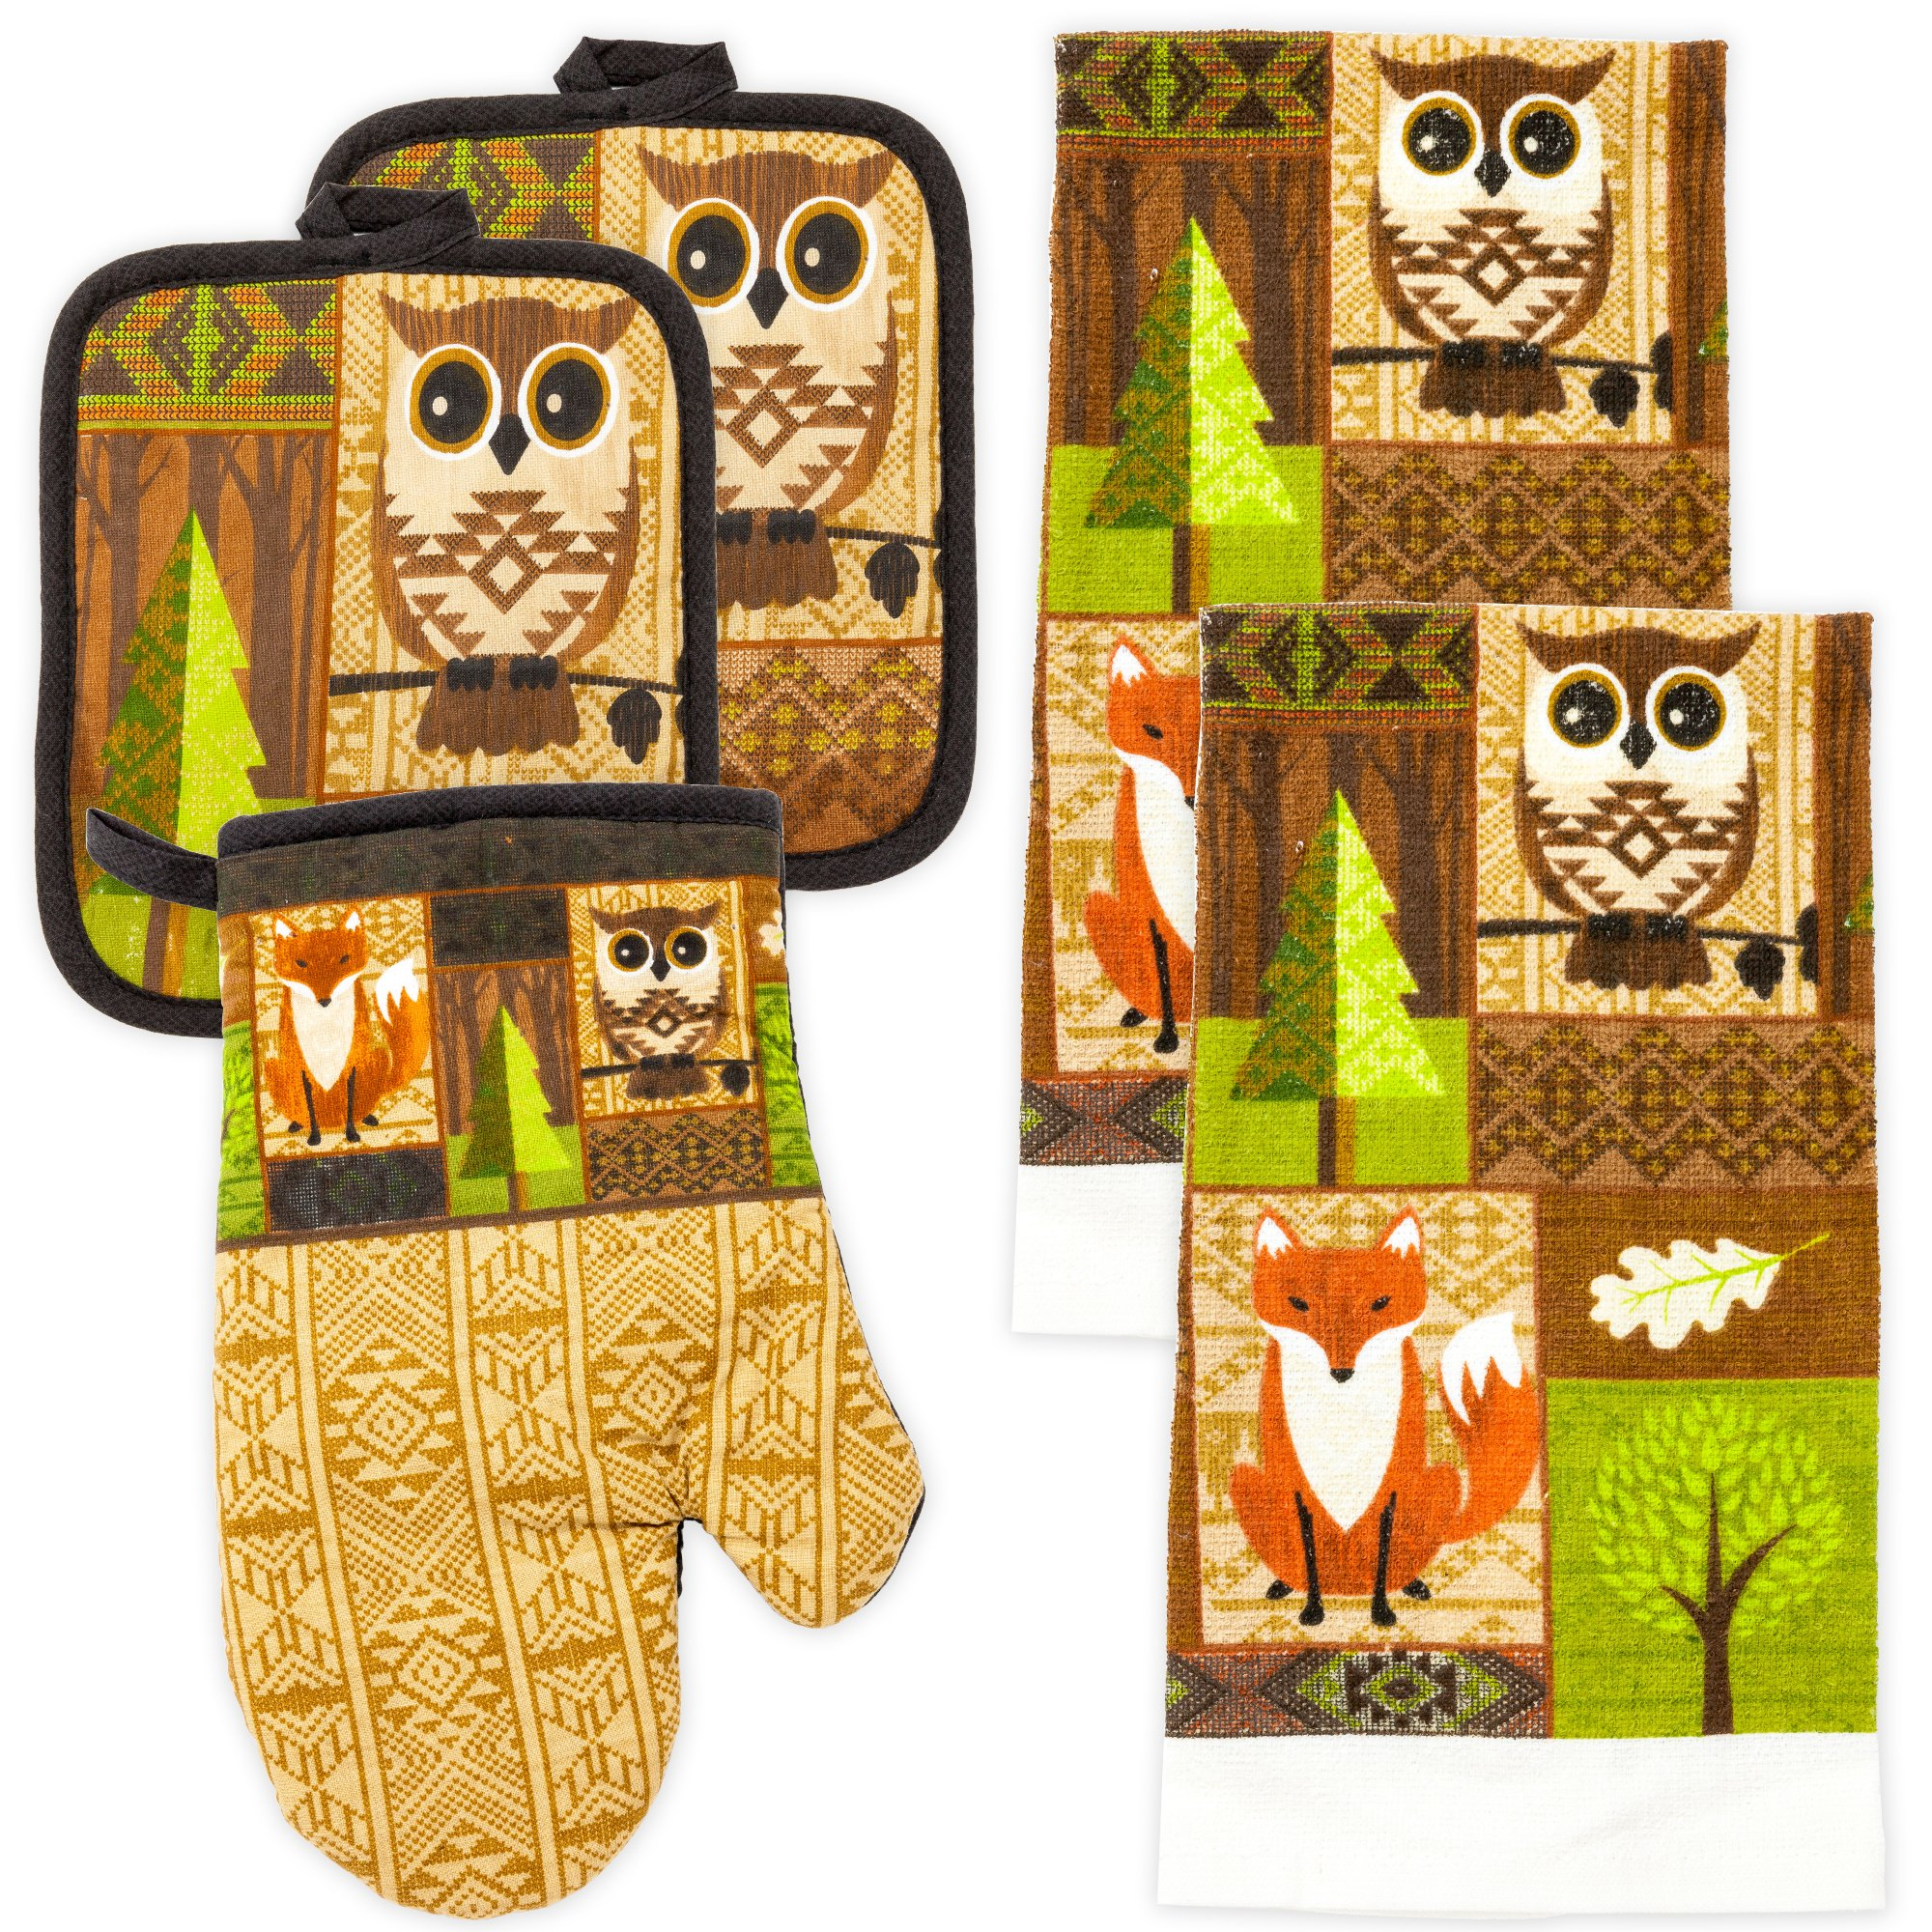 MJM Innovations Kitchen Towel Linen Set of 5 Pieces   2 Kitchen Towels 2 Potholders & 1 Oven Mitten   Featuring Brown Owls, Fox, Pine Leaves, Mosaic Design Patterns Decor (Brown Owls).